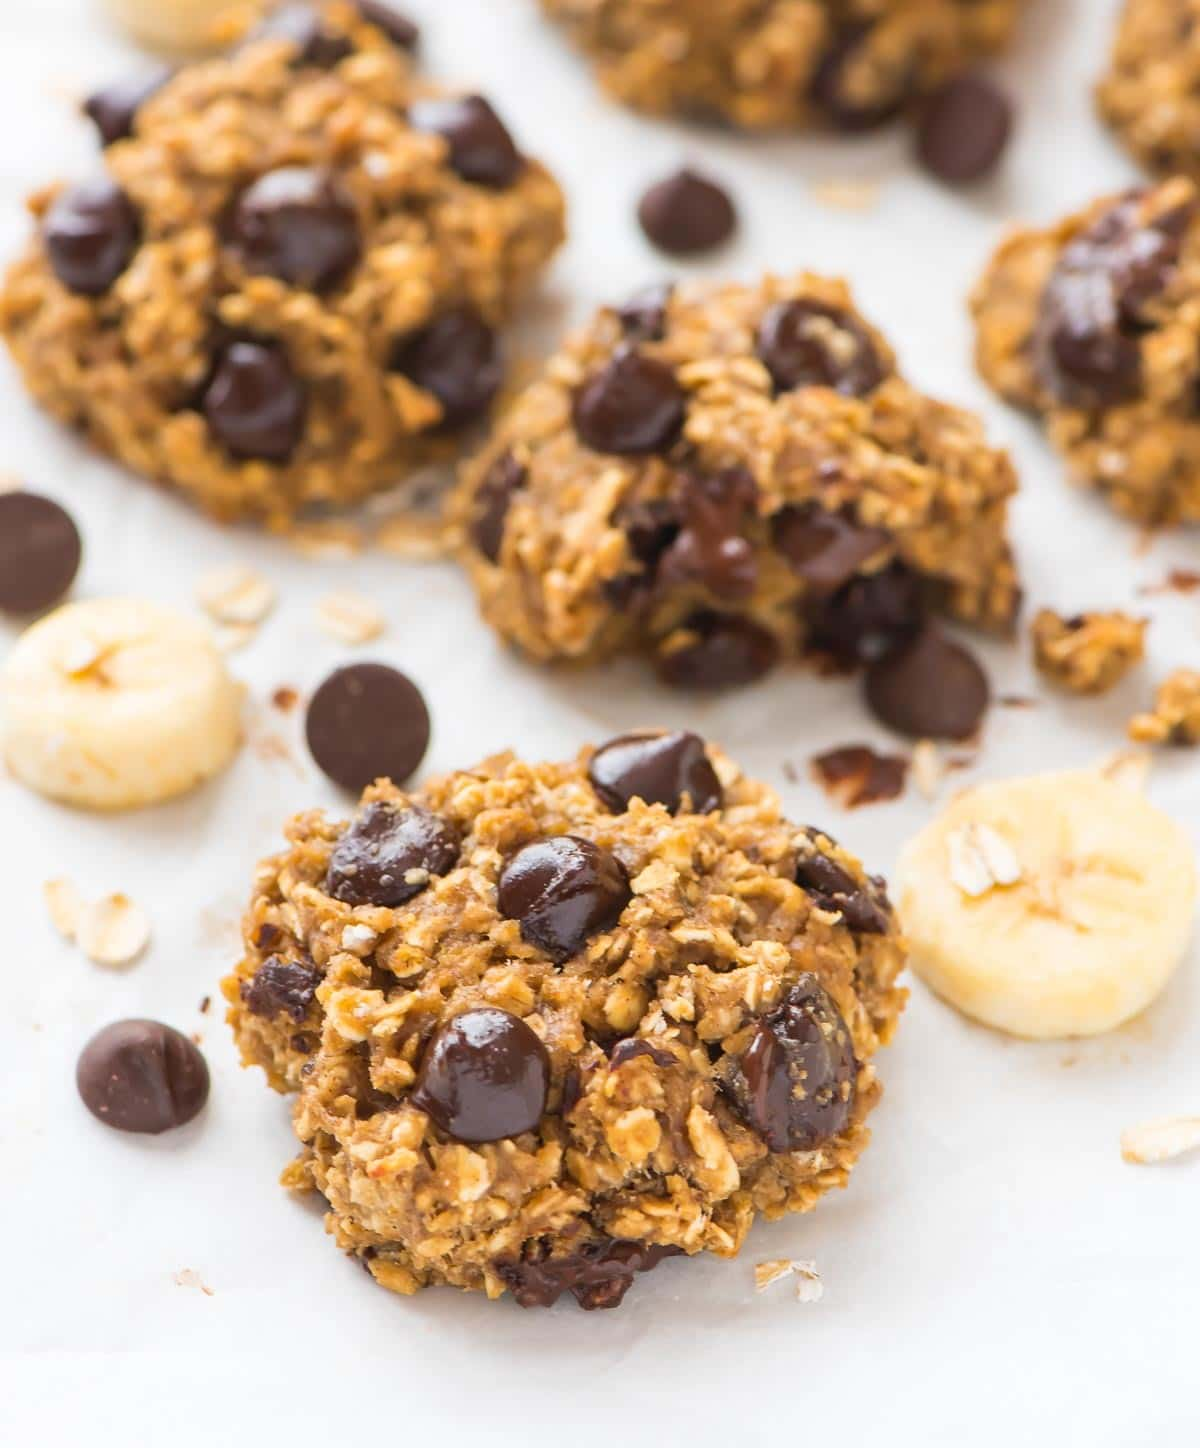 Soft and chewy Chocolate Chip Oatmeal Banana Cookies. NO BUTTER! The mashed banana makes them soft and moist without it. Perfect healthy dessert any time you have a craving. Recipe at wellplated.com | @wellplated